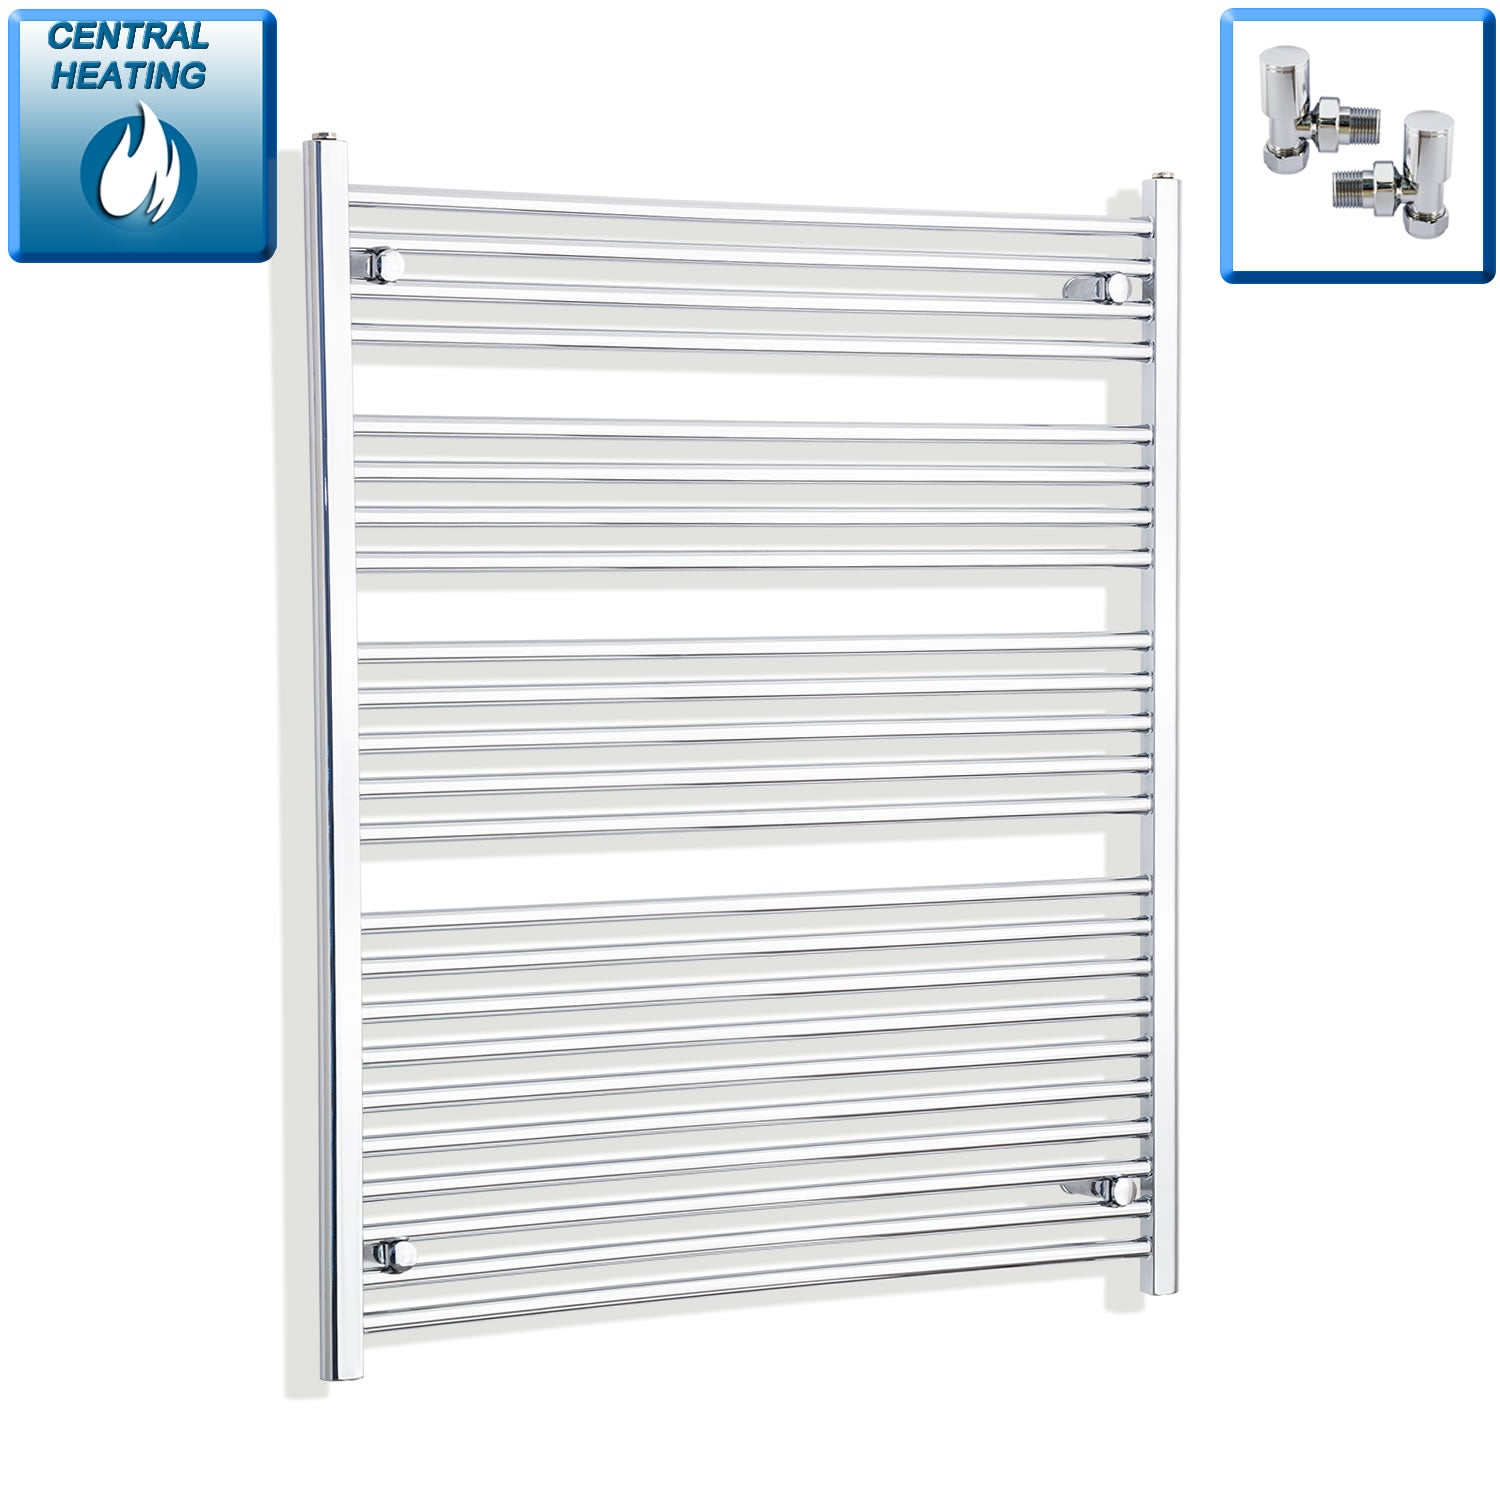 950mm Wide 1200mm High Flat Chrome Heated Towel Rail Radiator HTR,With Angled Valve